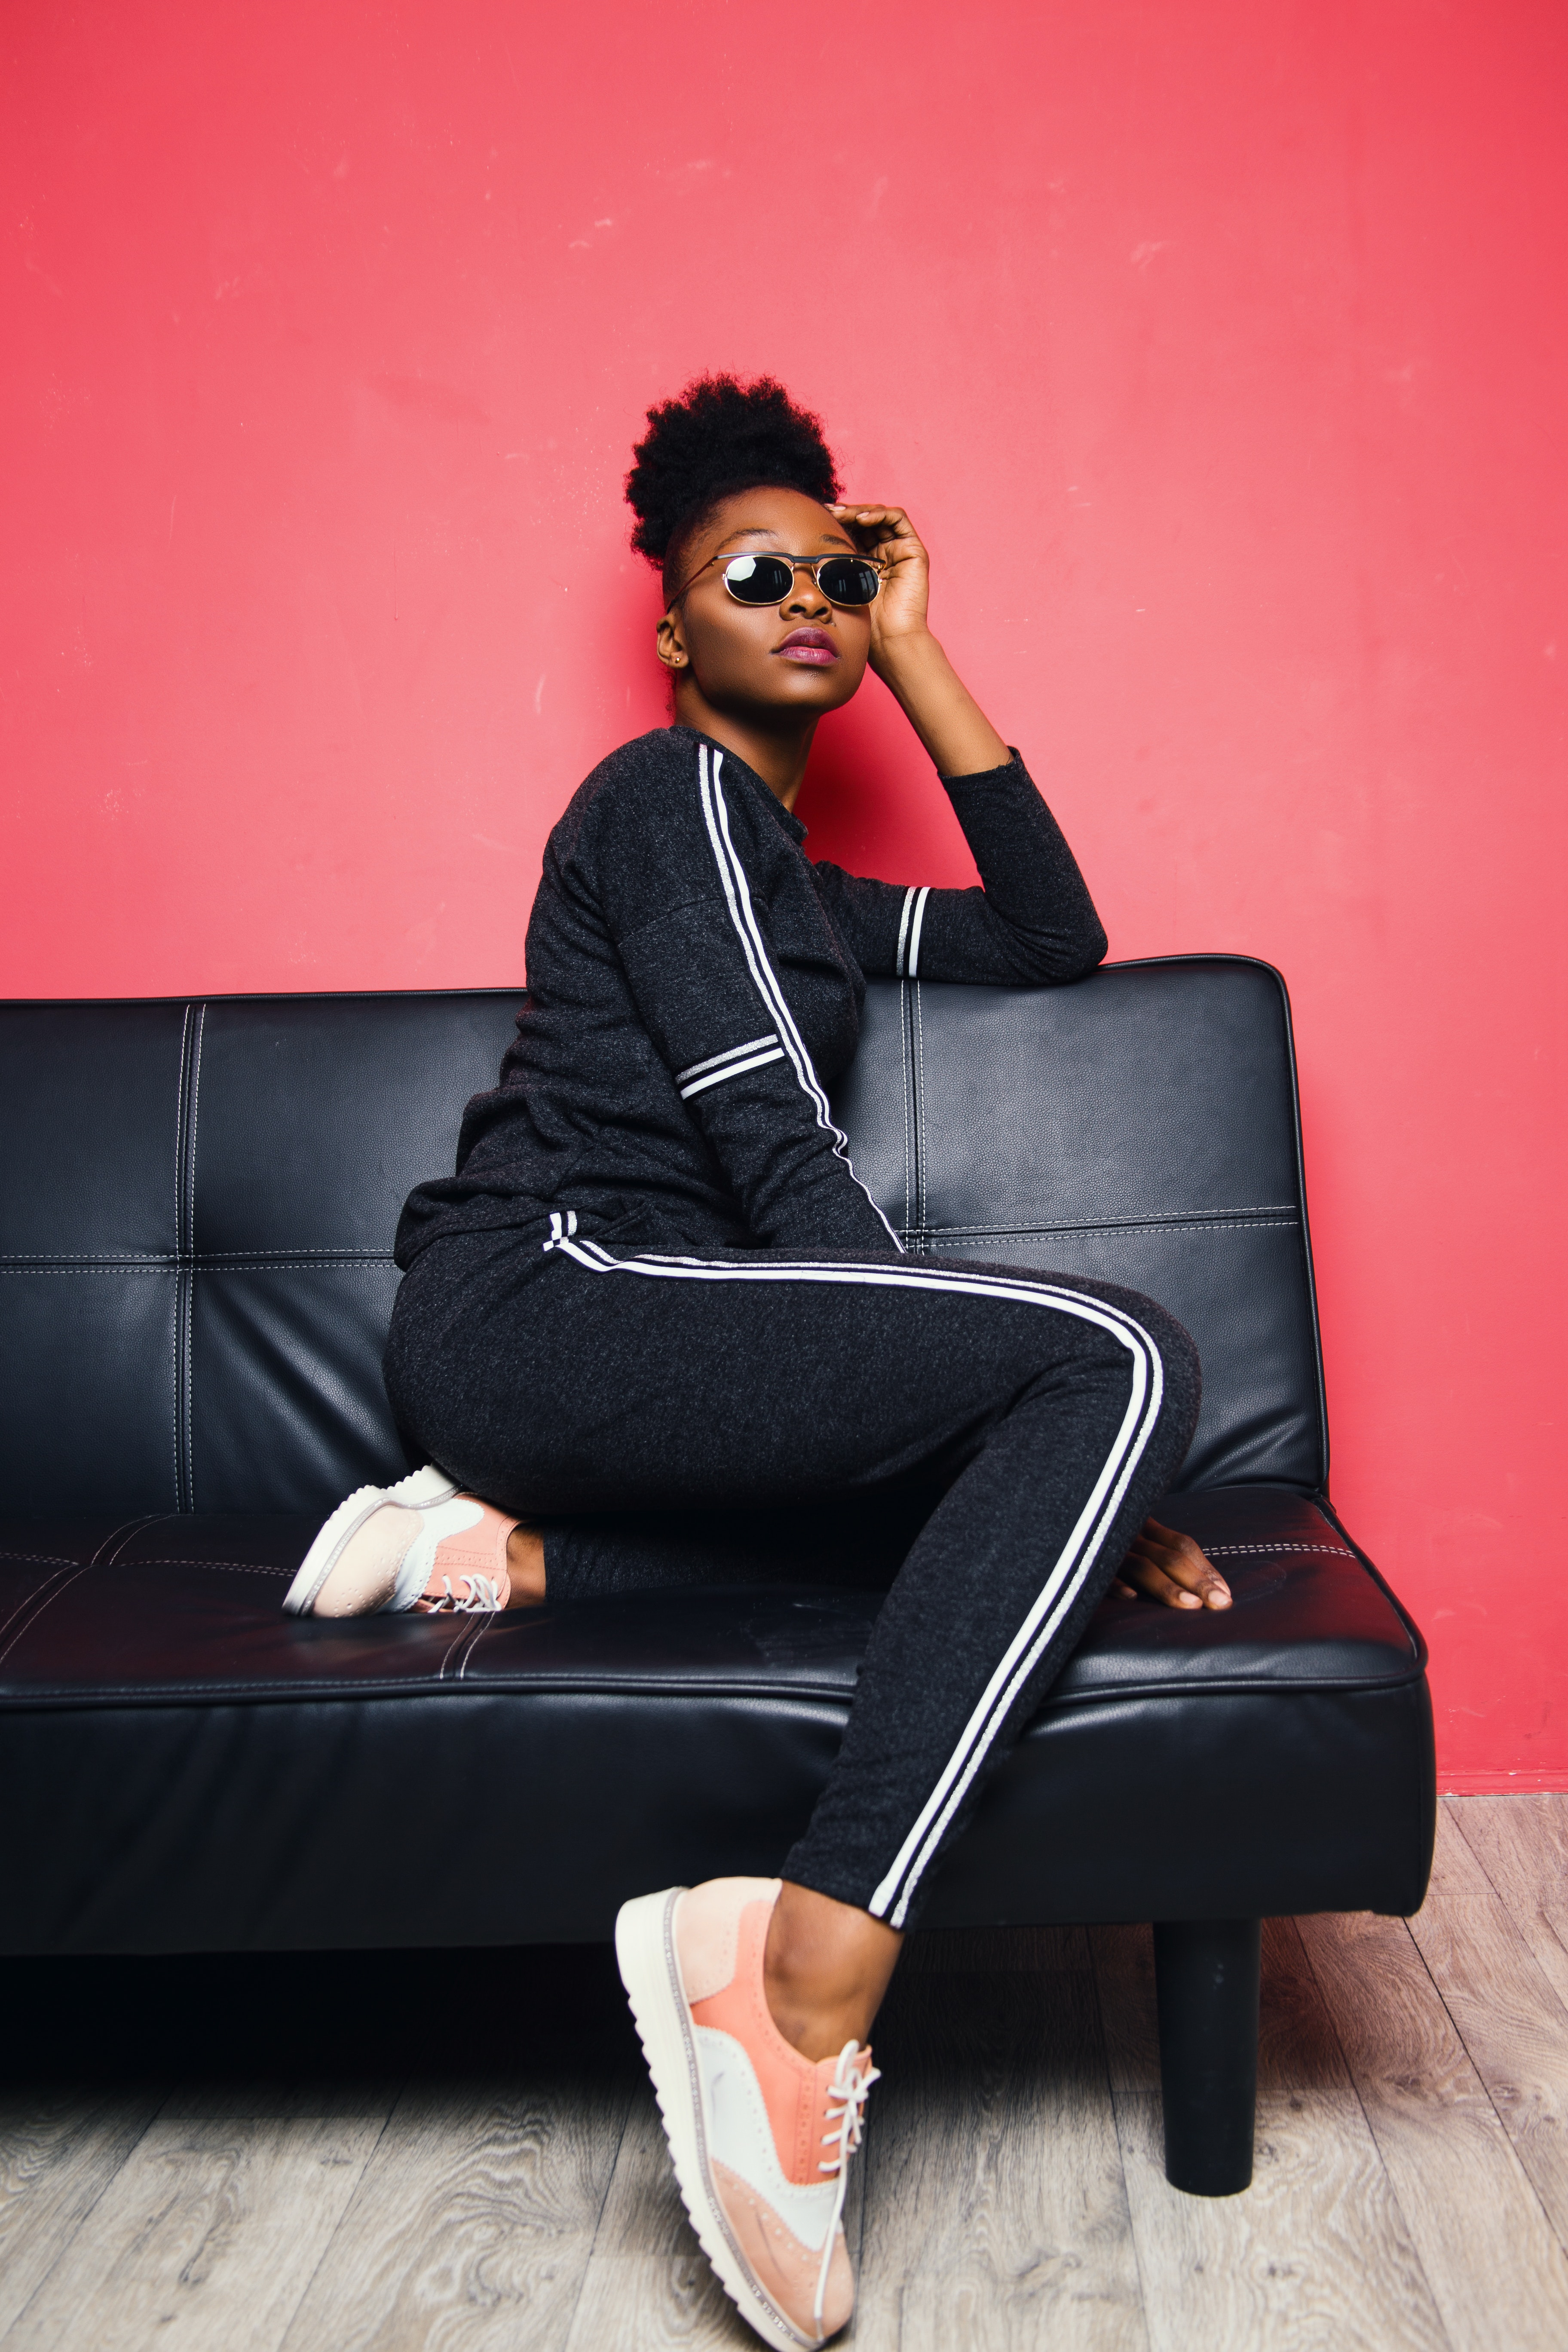 Woman Wearing Sunglasses Sits on Sofa Inside the Room, Adult, Pose, Red, Seat, HQ Photo